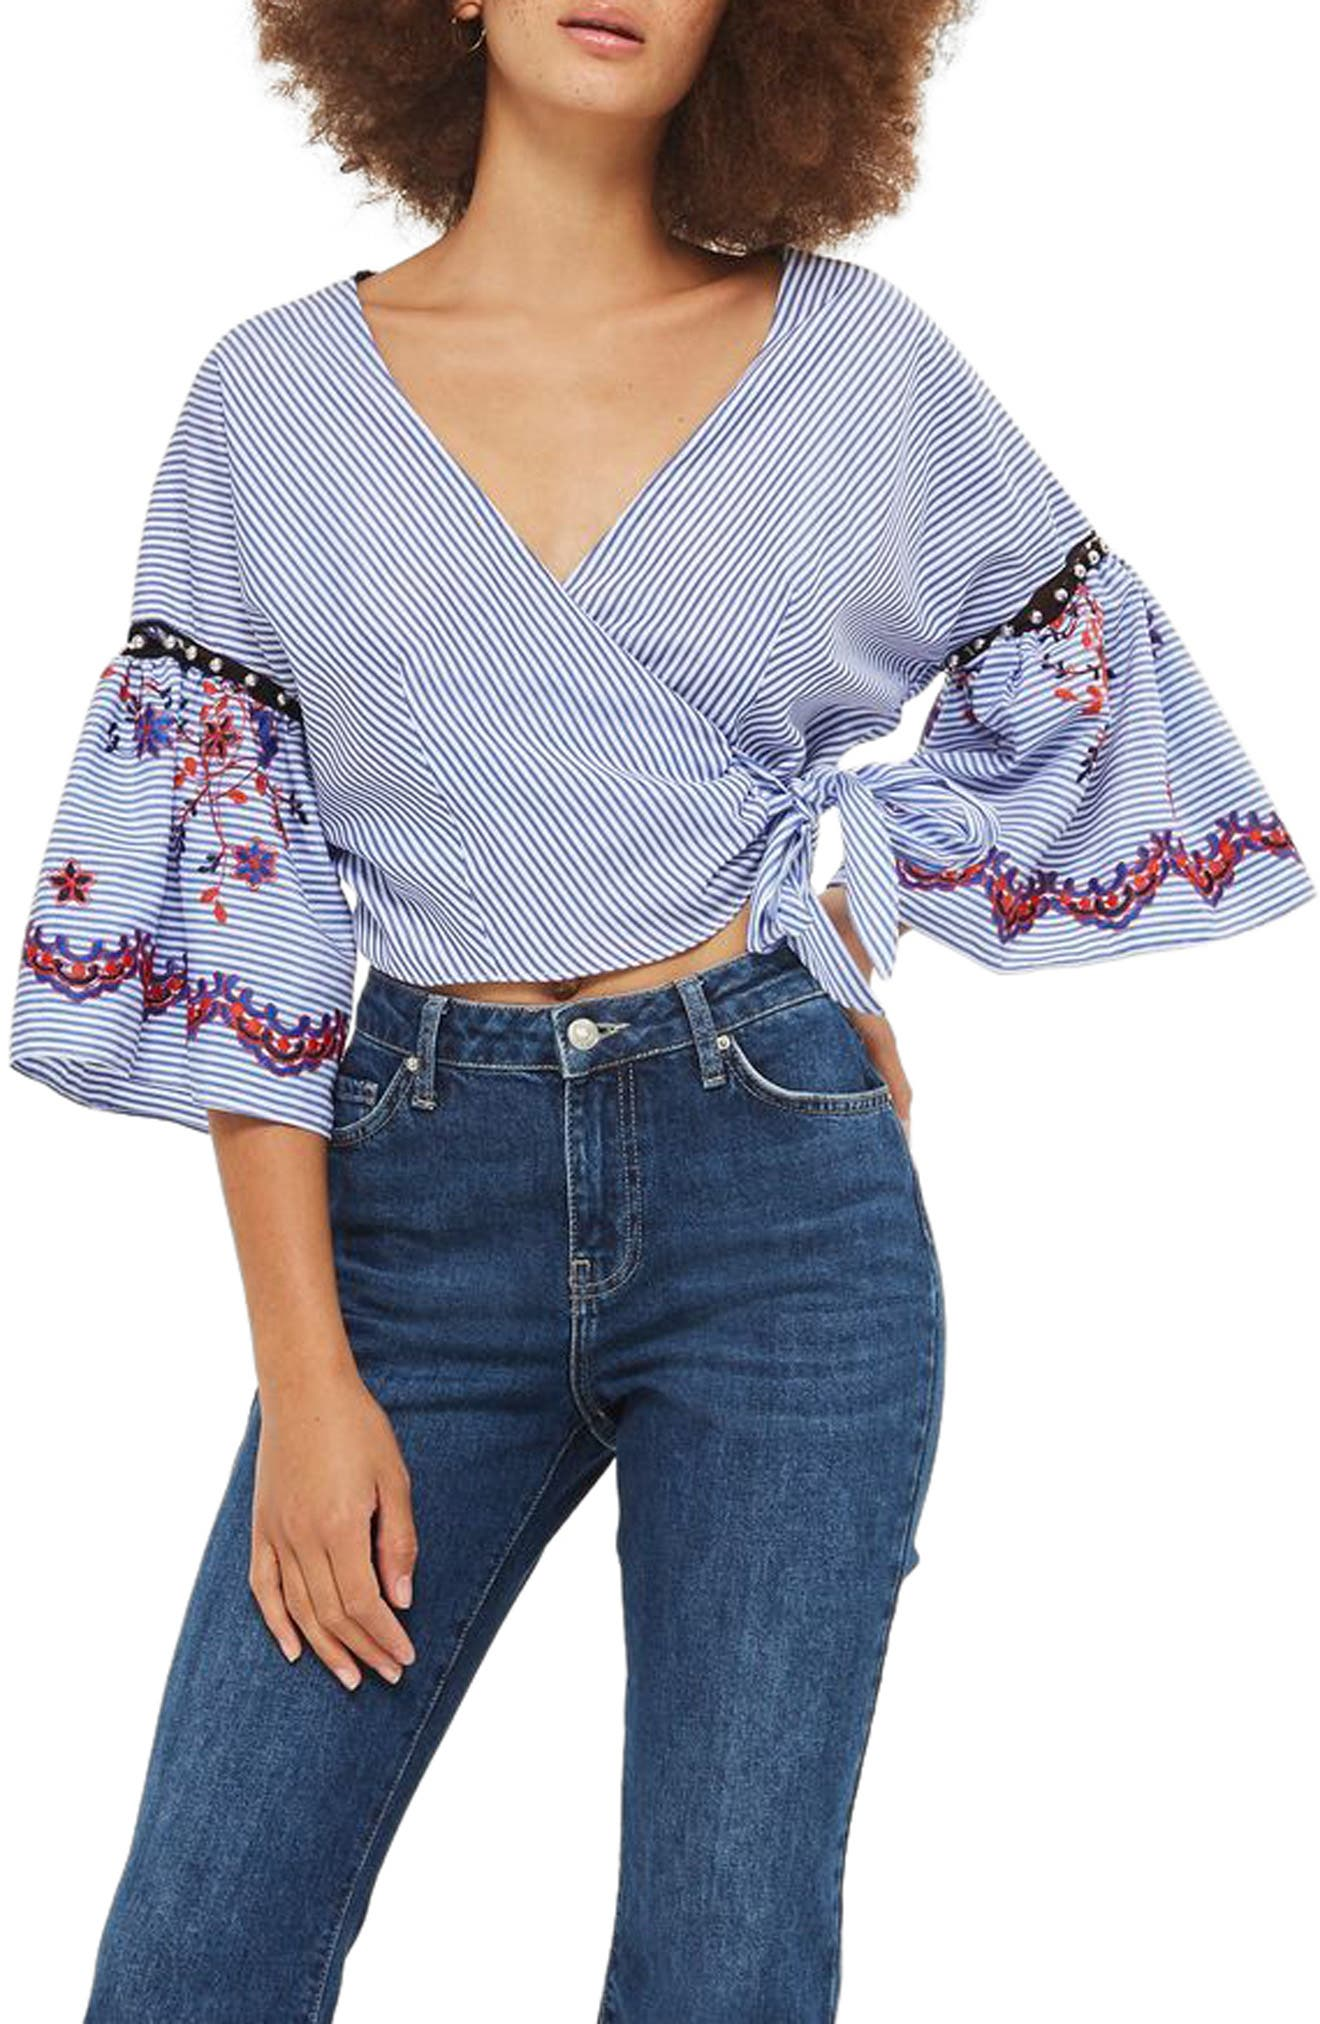 Alternate Image 1 Selected - Topshop Embroidered Stripe Wrap Top